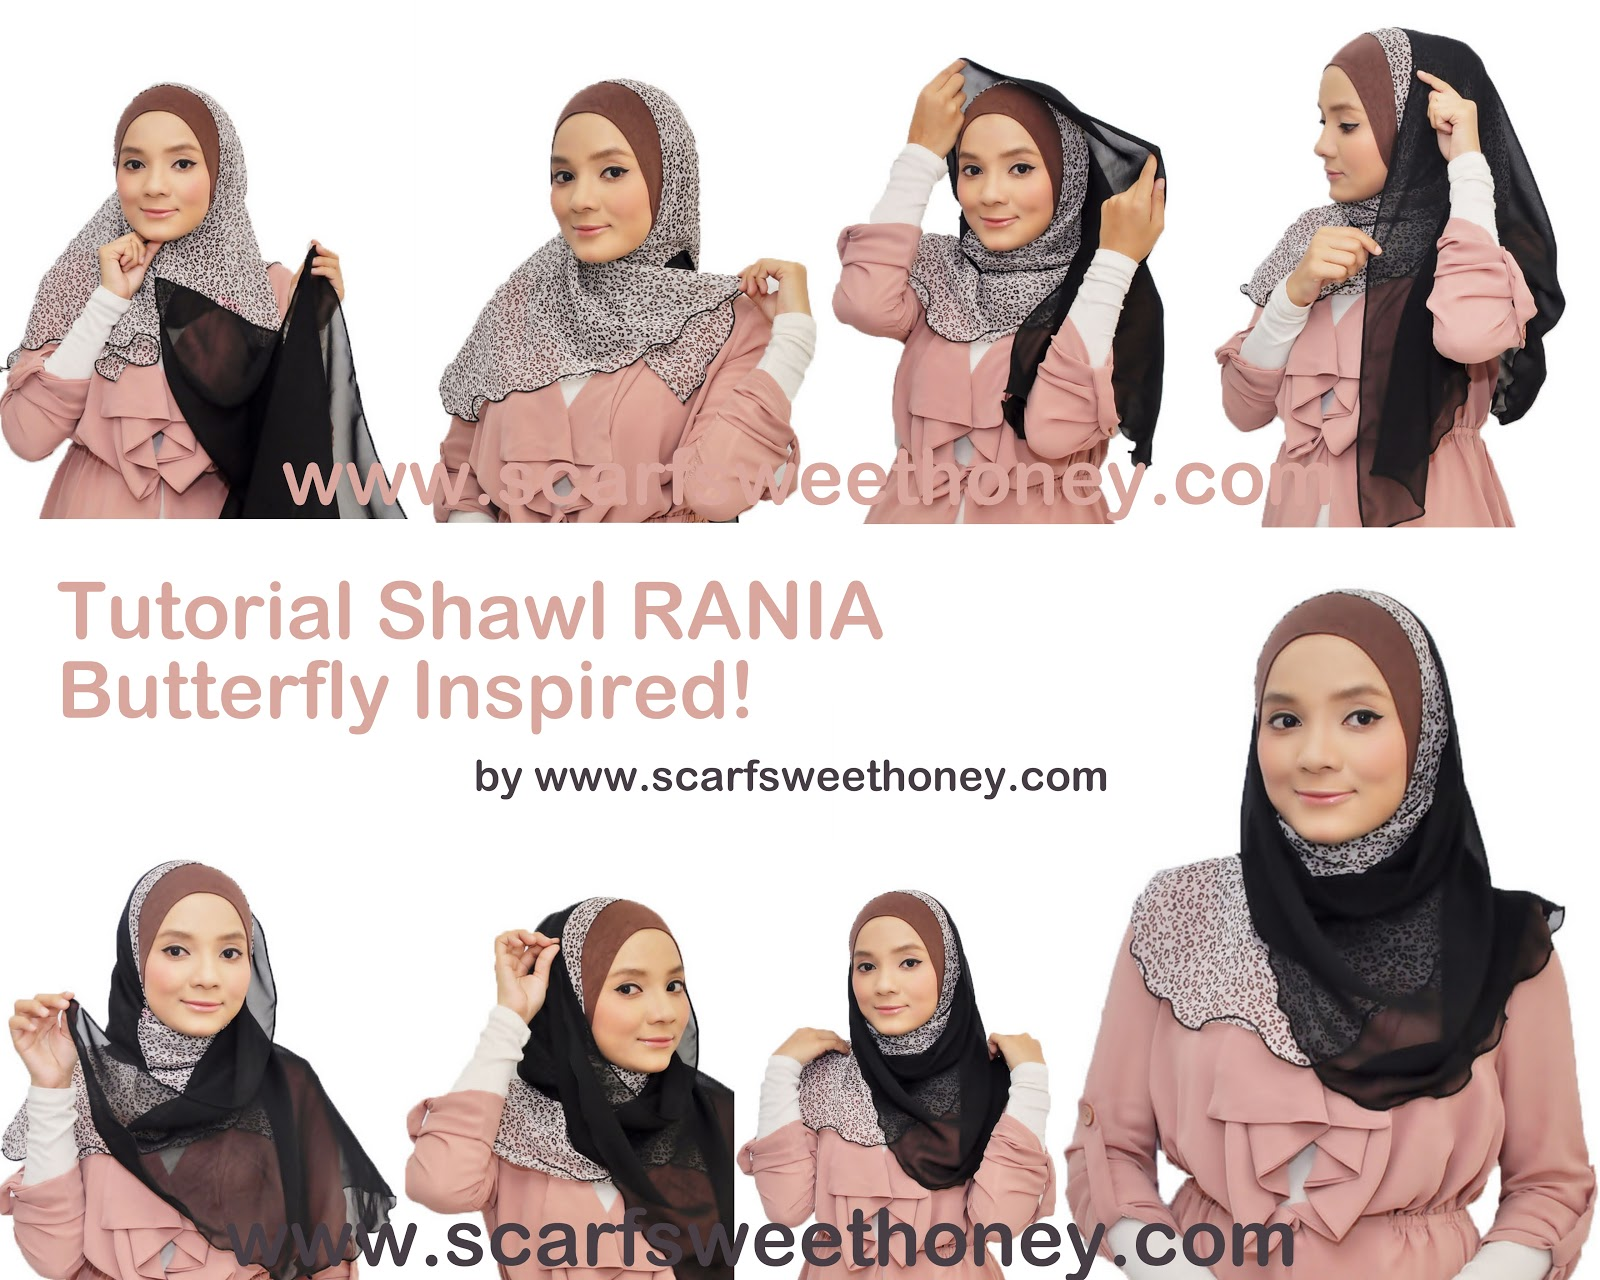 Tutorial Hijab April 2015